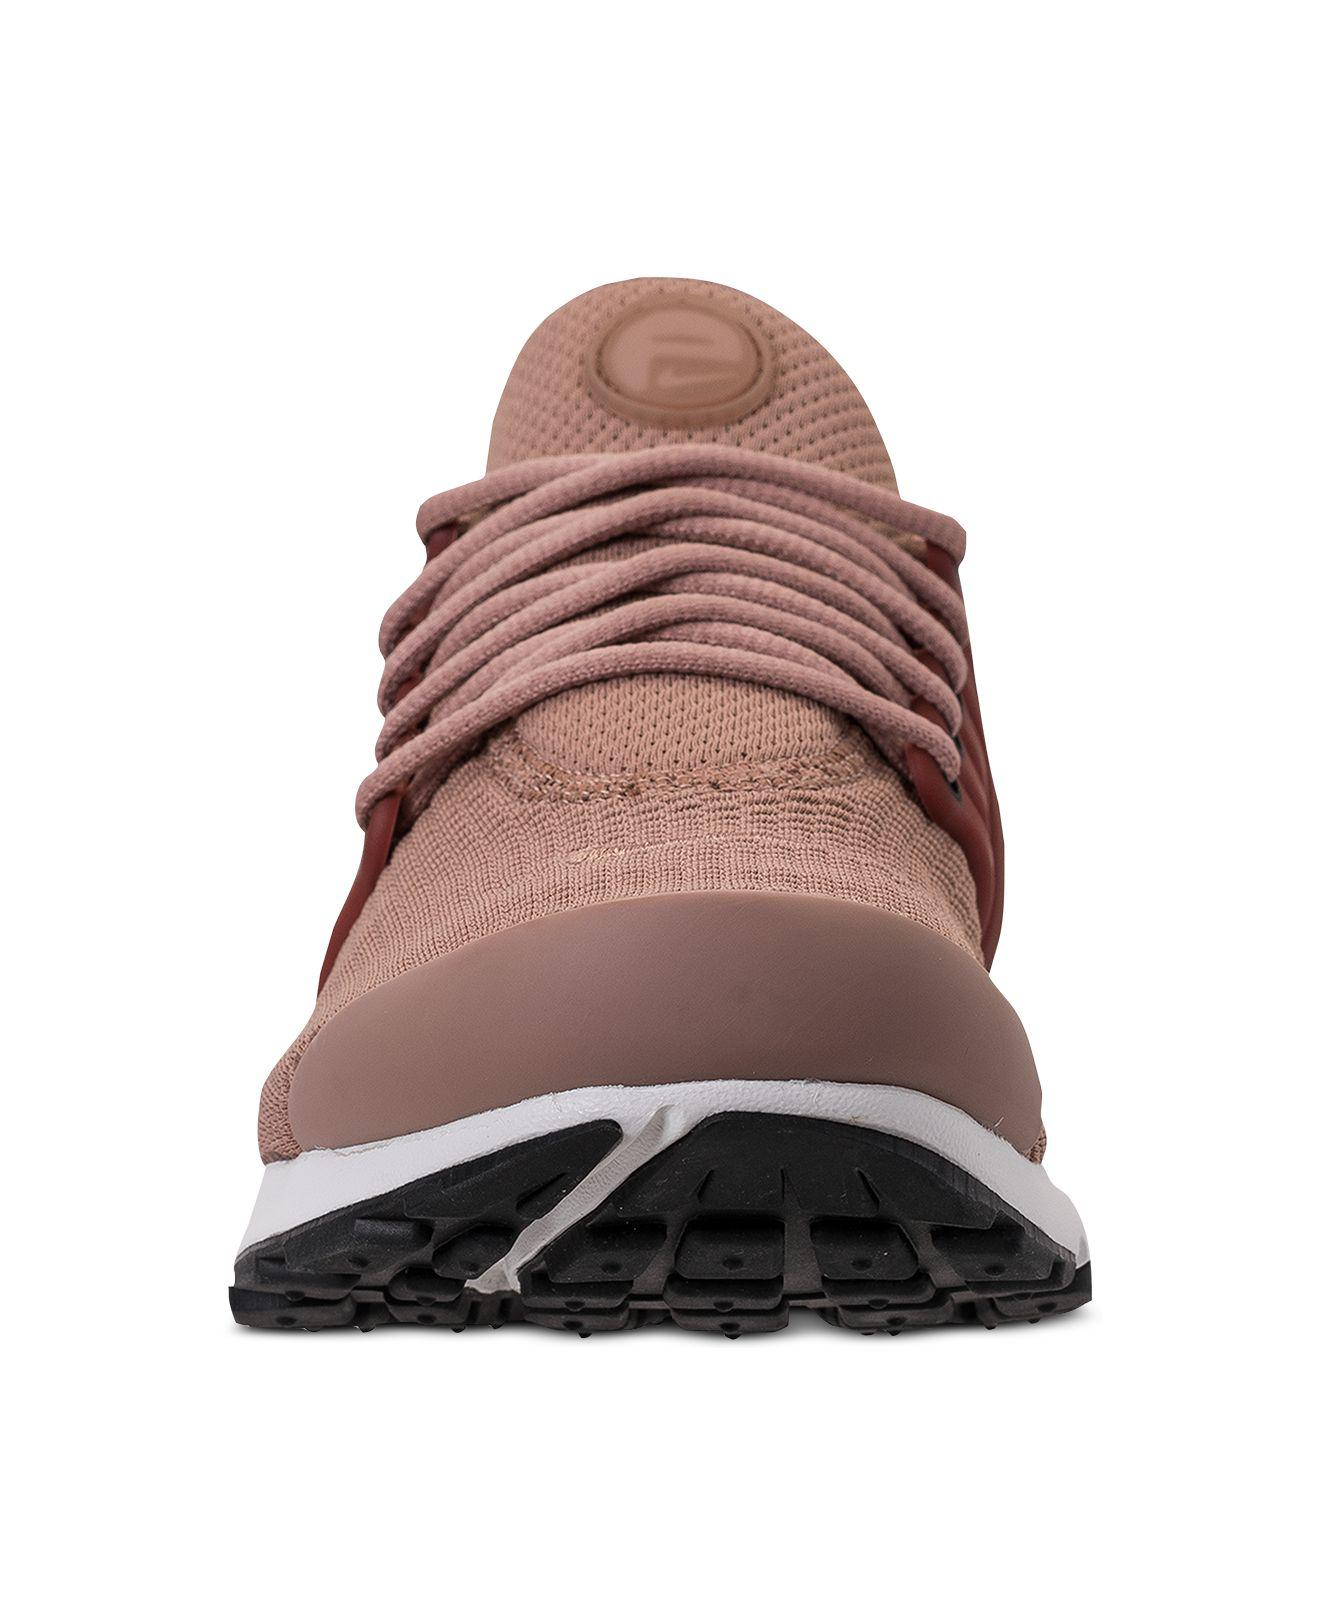 7e3ff8c9f6f3 Lyst - Nike Air Presto Running Sneakers From Finish Line